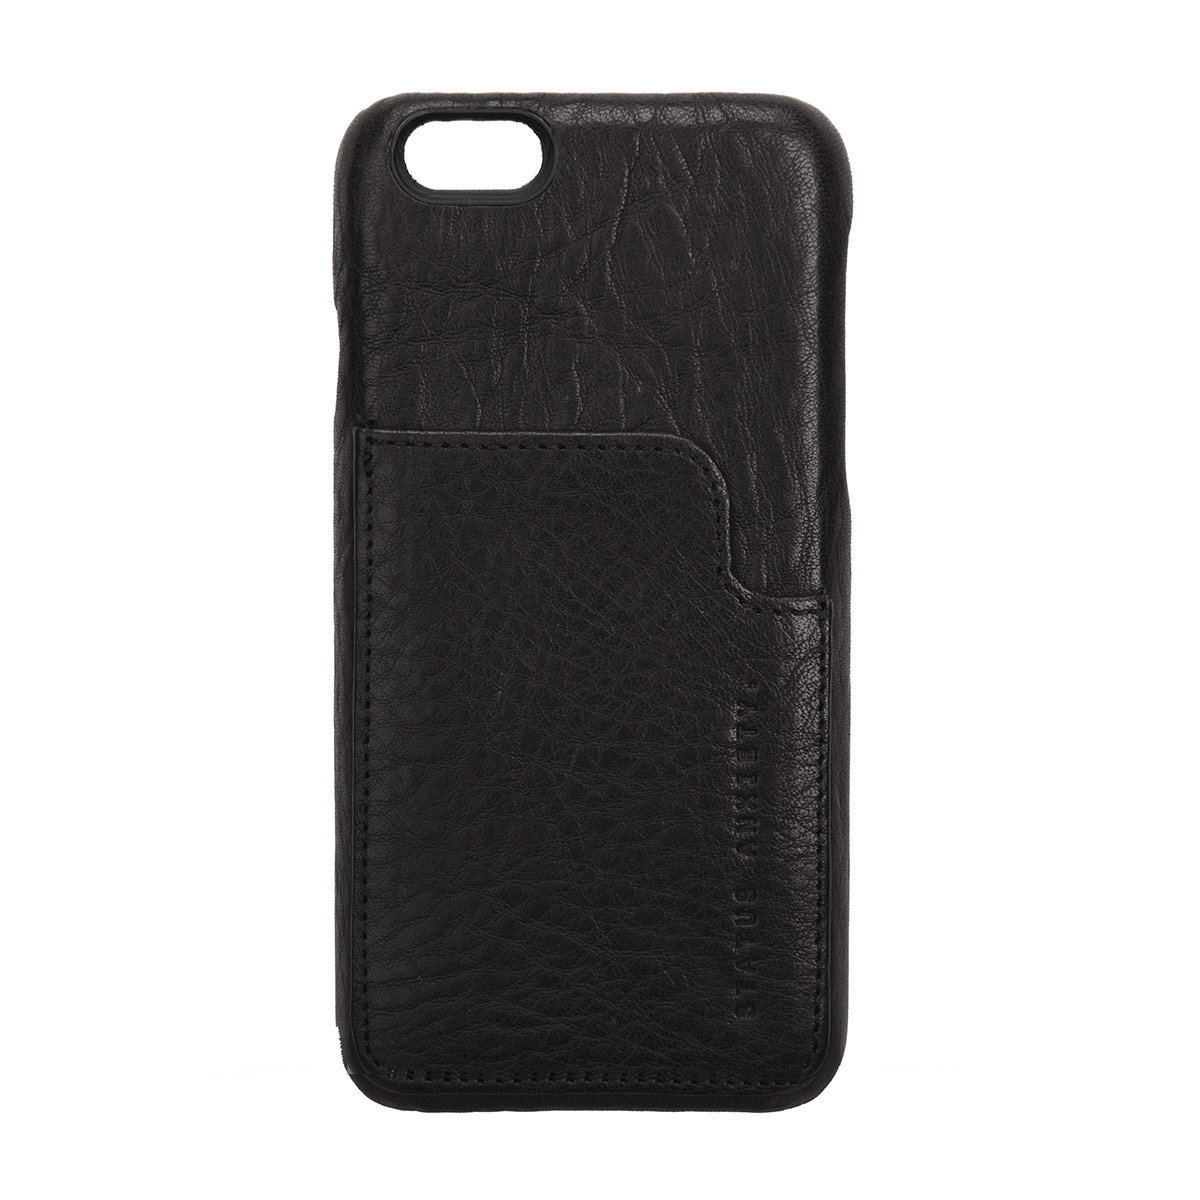 Hunter and Fox iPhone 6/6S Case